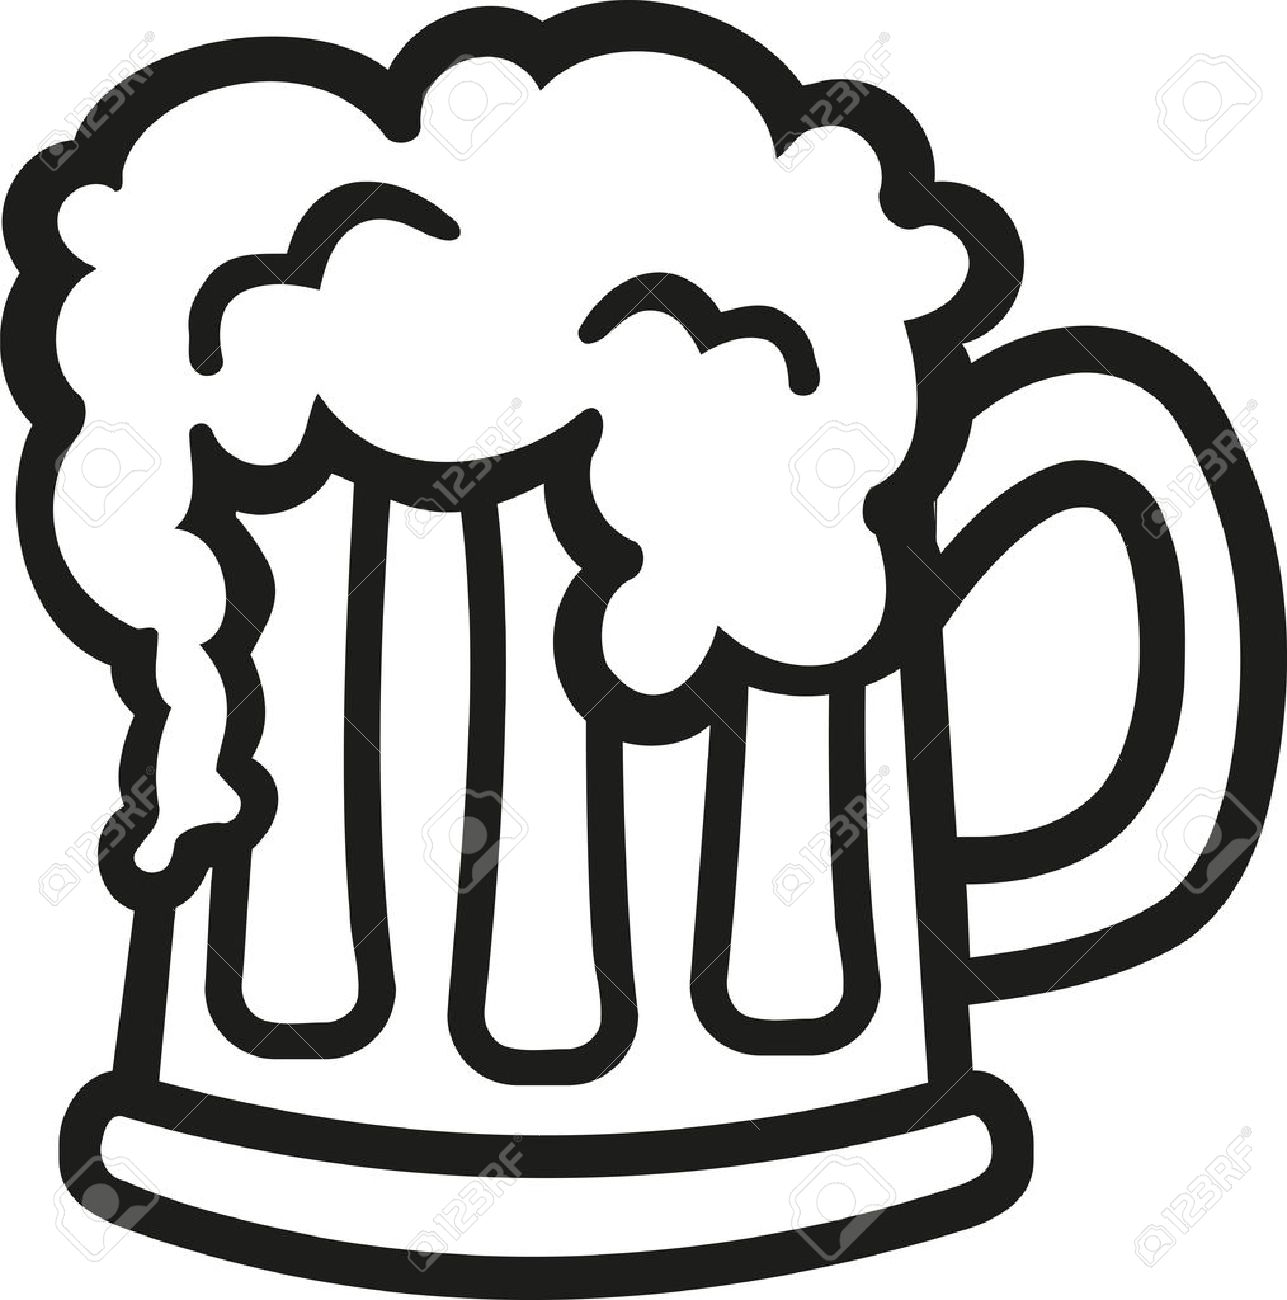 Beer clipart black and white 6 » Clipart Station.